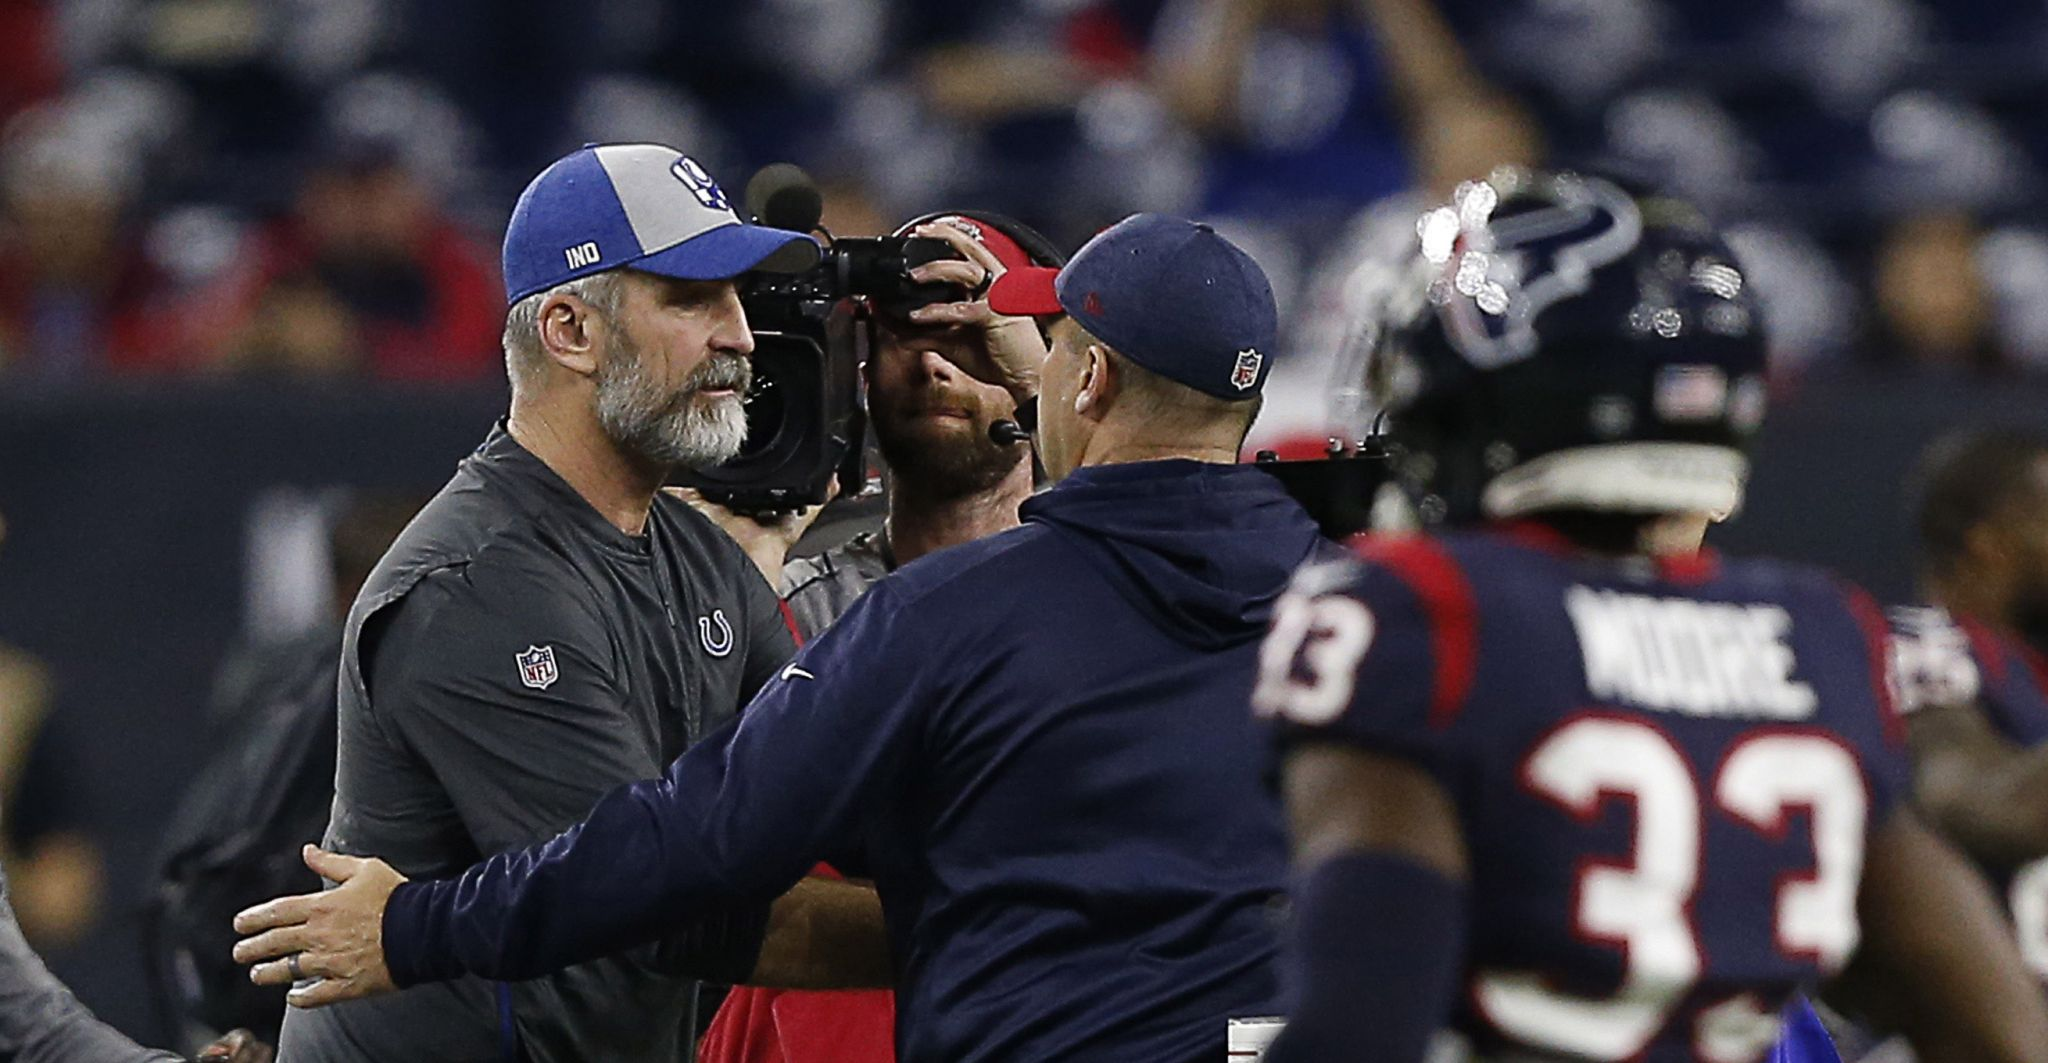 Colts' Frank Reich on Texans: 'They're the class of the division'